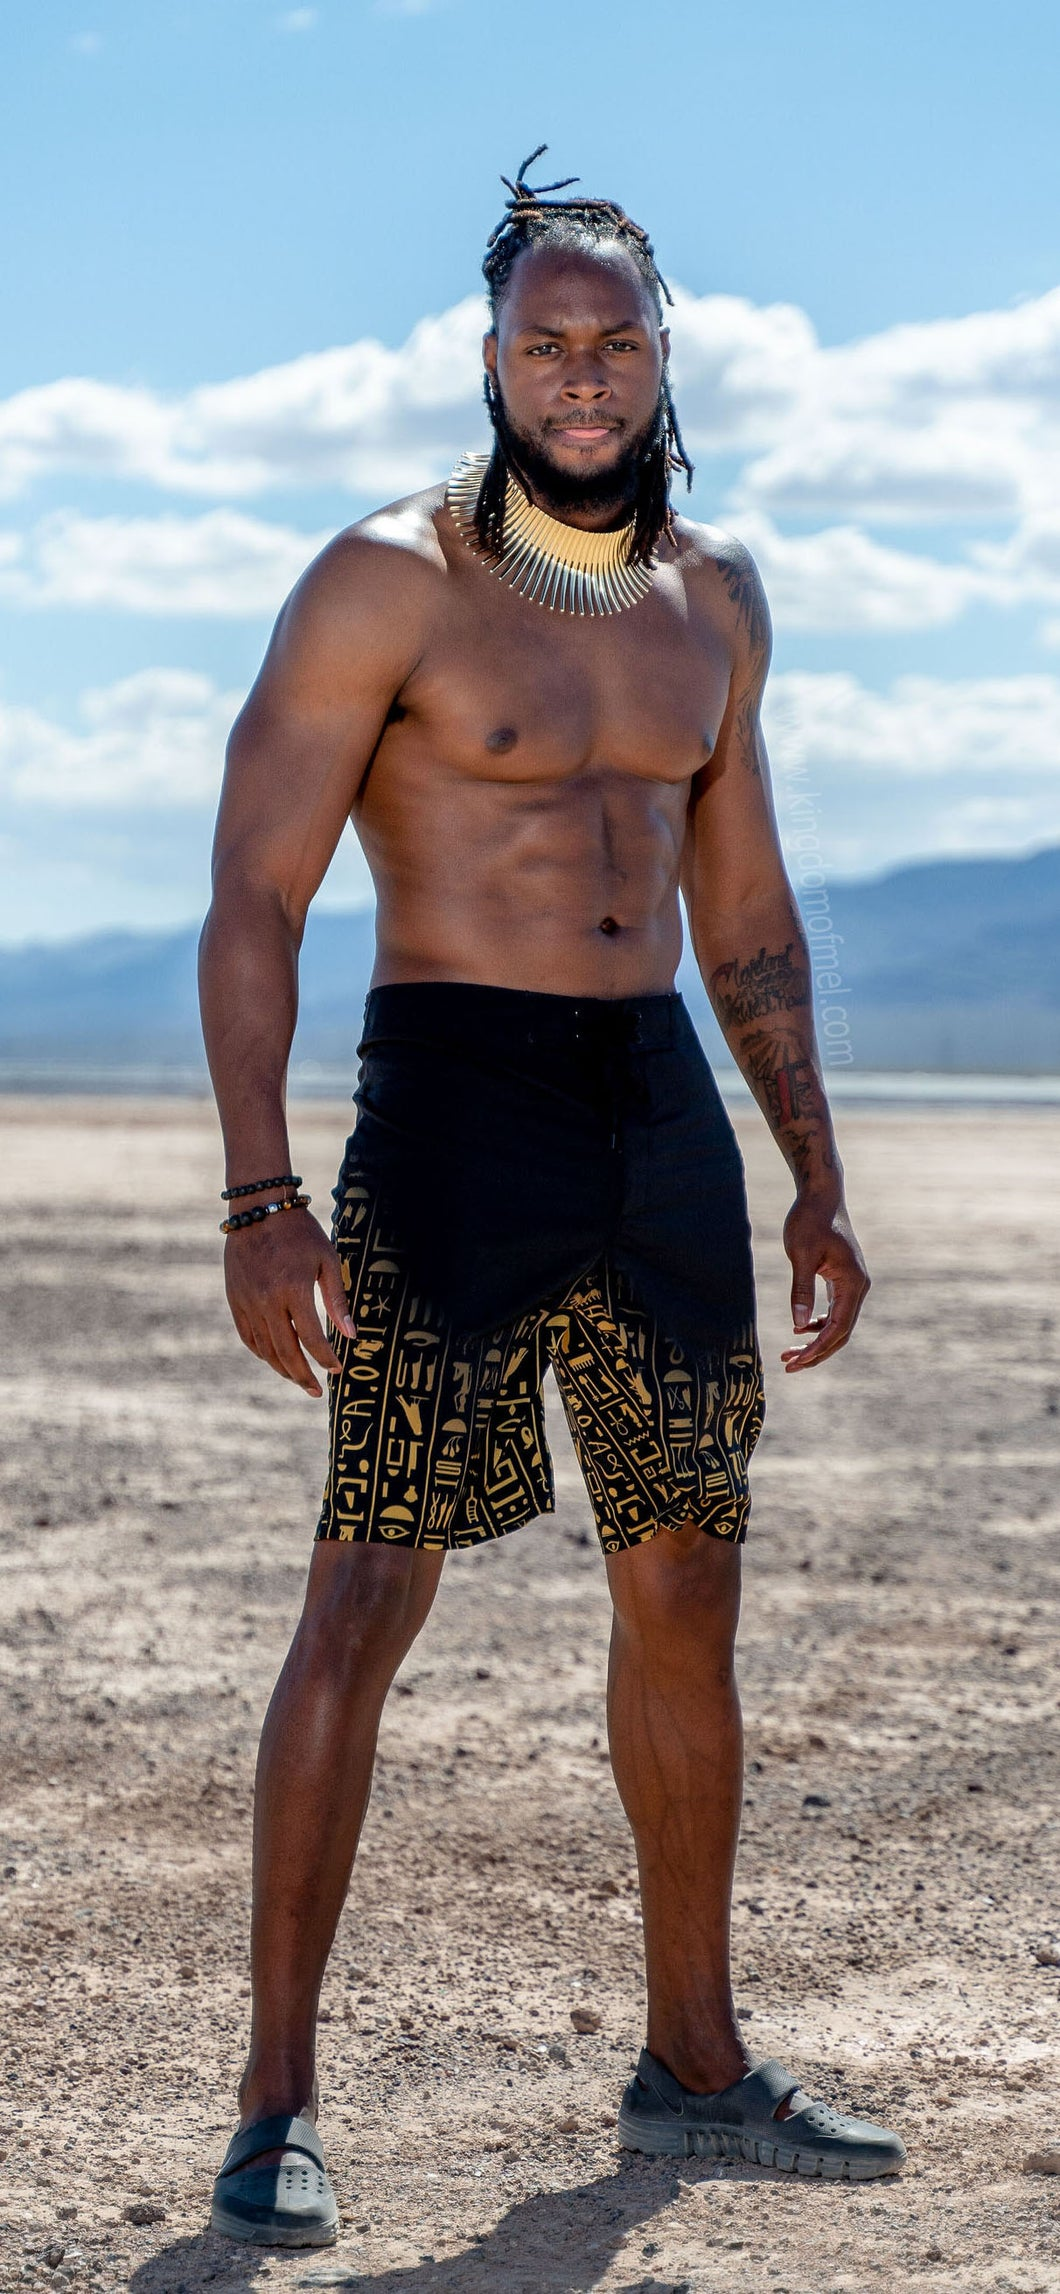 Egyptian Board Shorts - Kingdom of Melanin